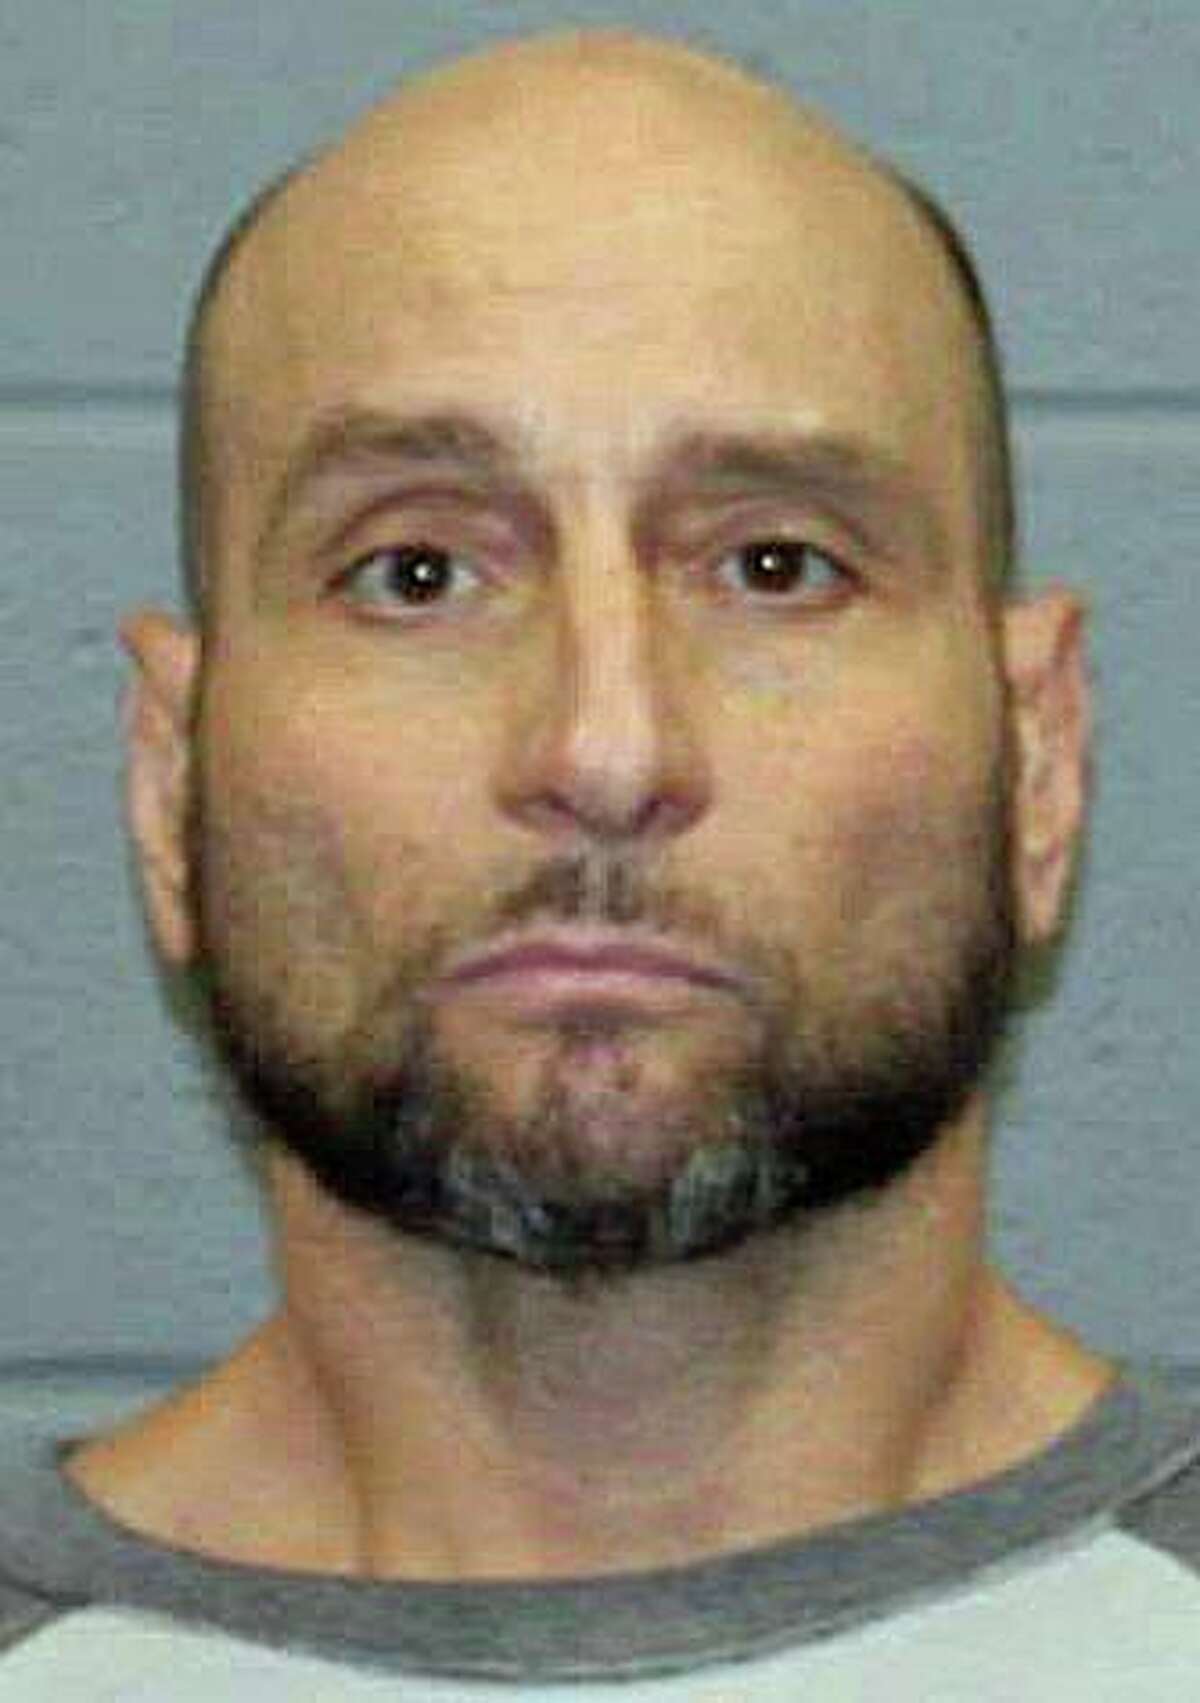 A 47-year-old Waterbury man has been arrested in a fatal hit and run death of a pedestrian on Oct. 22, 2020. Richard DiNicola, of Jones Drive, was taken into custody on Wednesday, Nov. 4, 2020 and charged in the death of James Gatlin, 67. DiNicola was charged with evading responsibility in an accident resulting in death or serious physical injury, tampering with physical evidence, illegal operation of a motor vehicle under suspension, operation of motor vehicle without insurance and failure to renew registration.